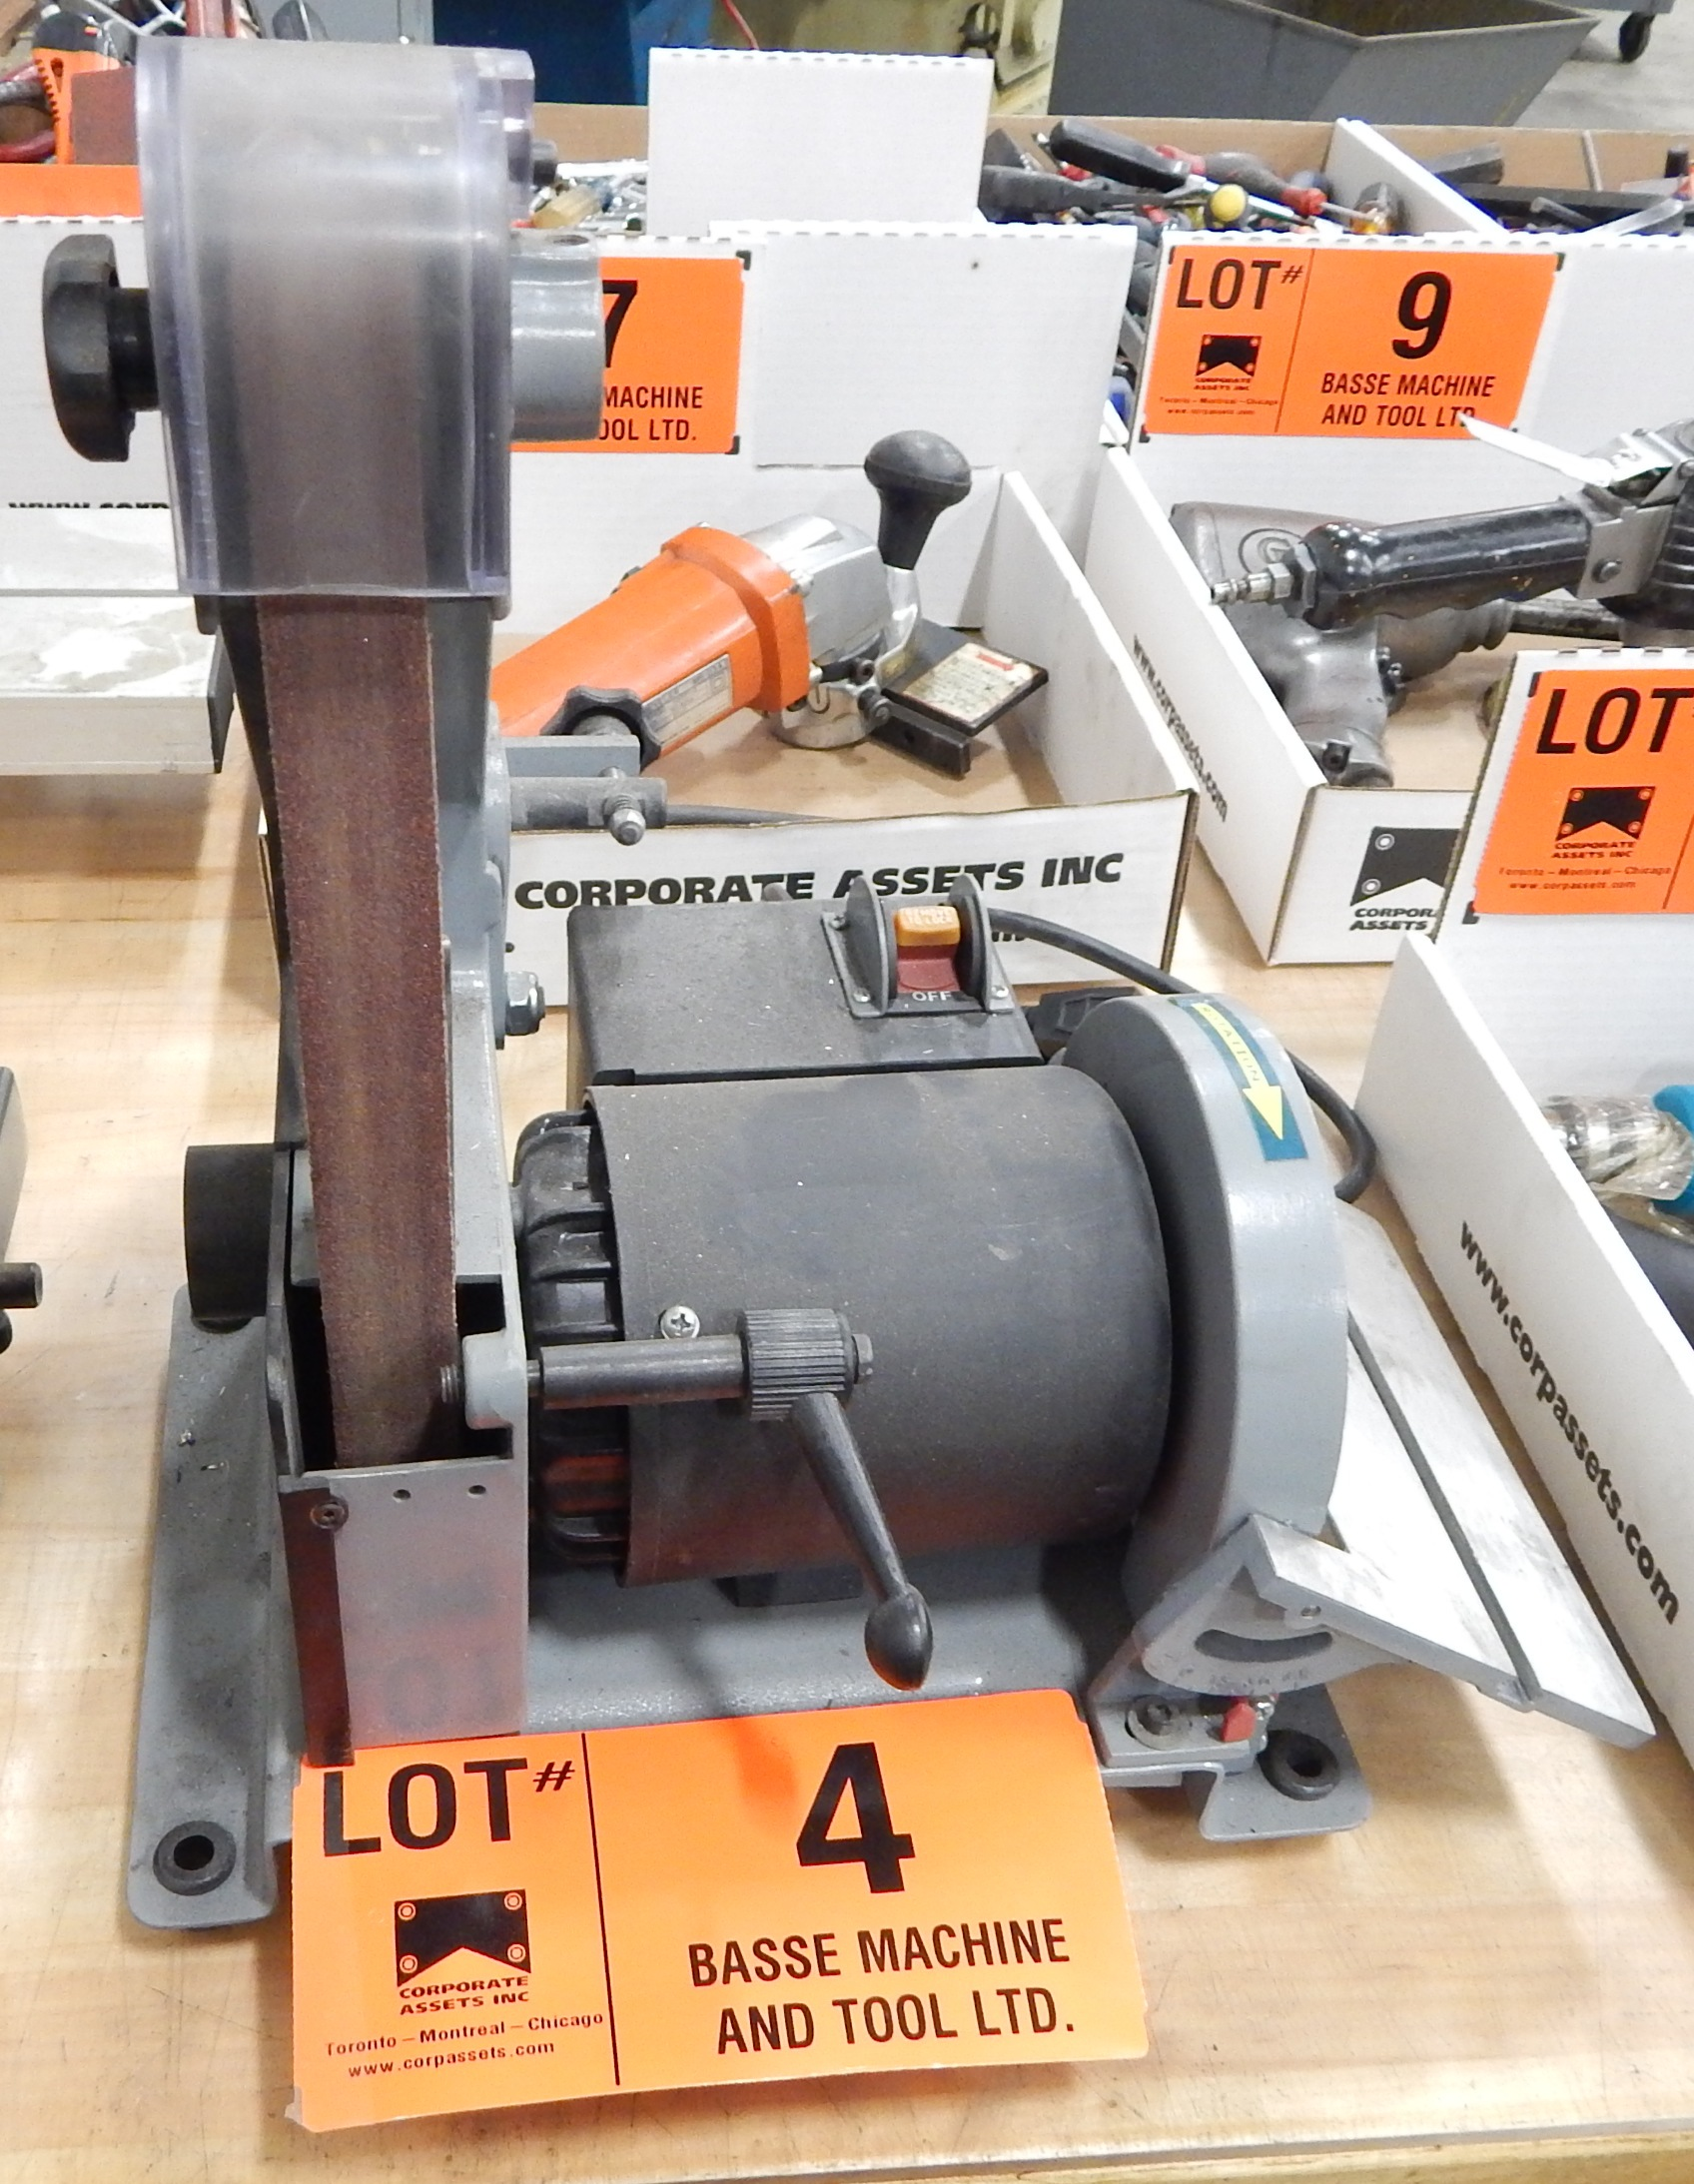 "Lot 4 - KING 1"" VERTICAL BELT SANDER"